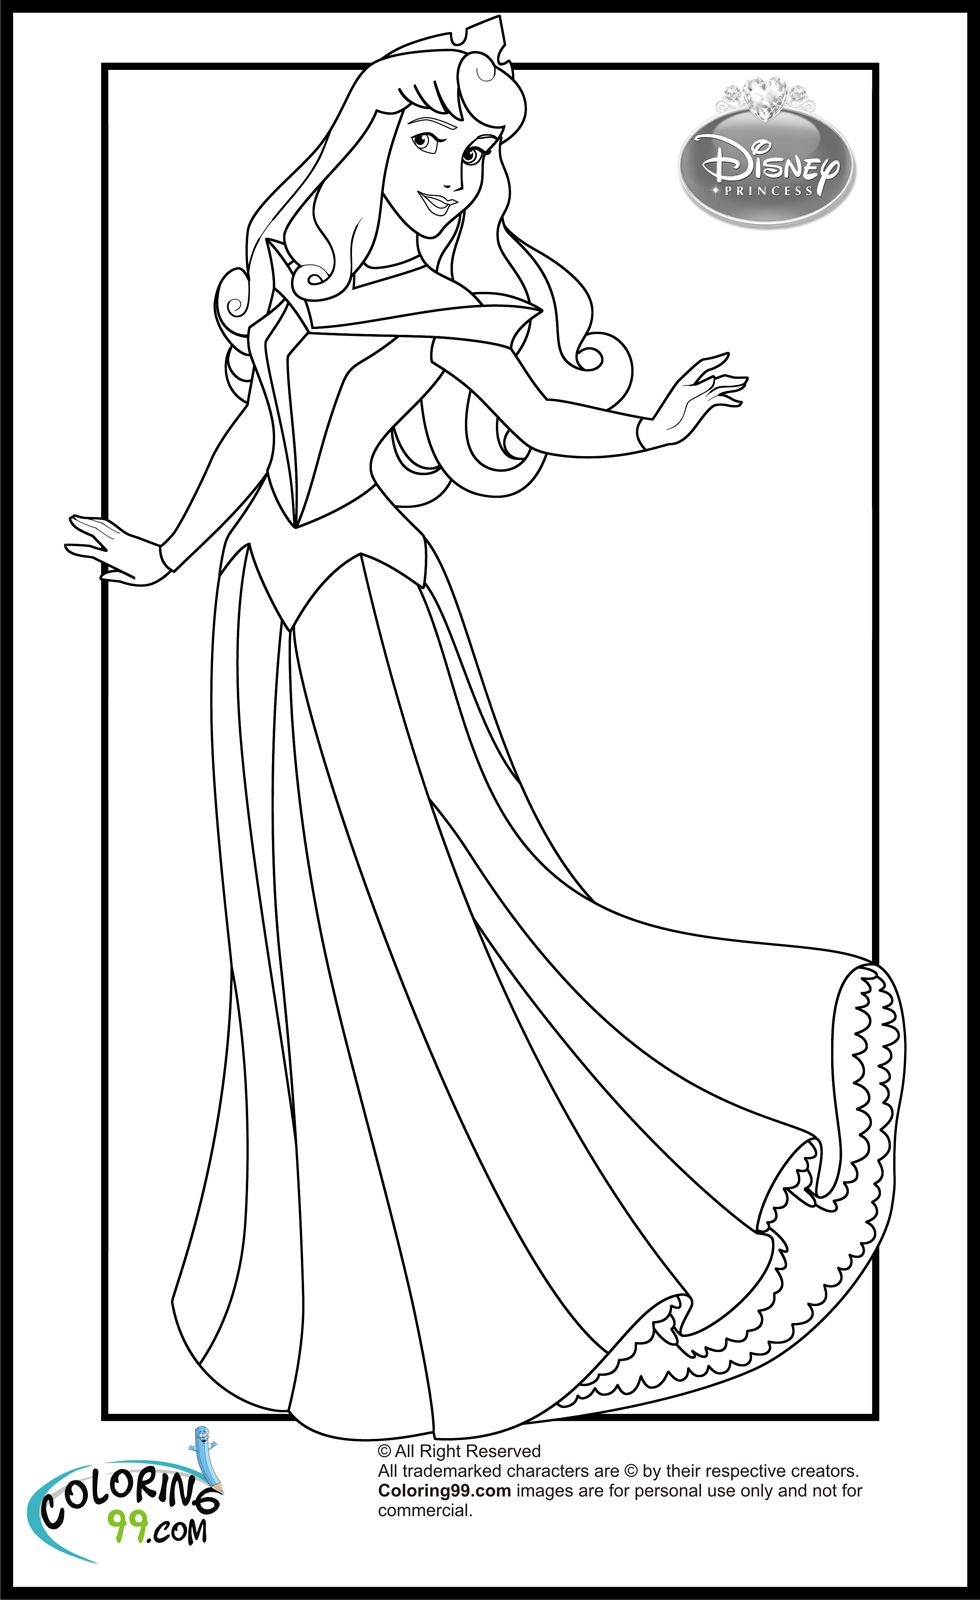 Generic princess coloring pages - Disney Princess Aurora Coloring Pages